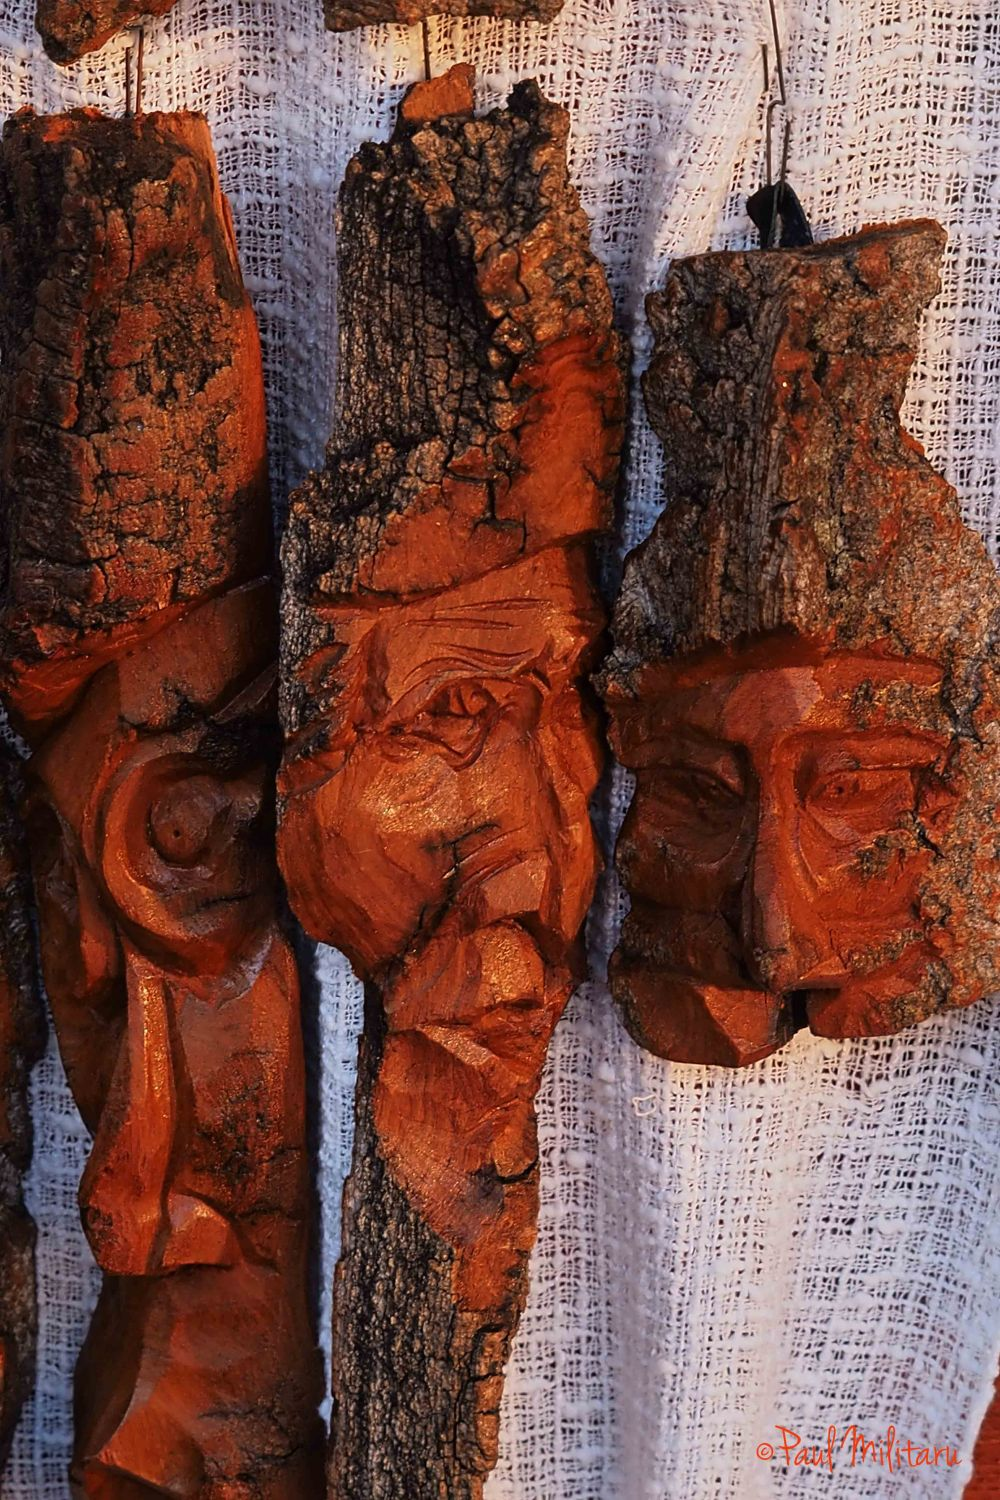 masks carved in tree bark